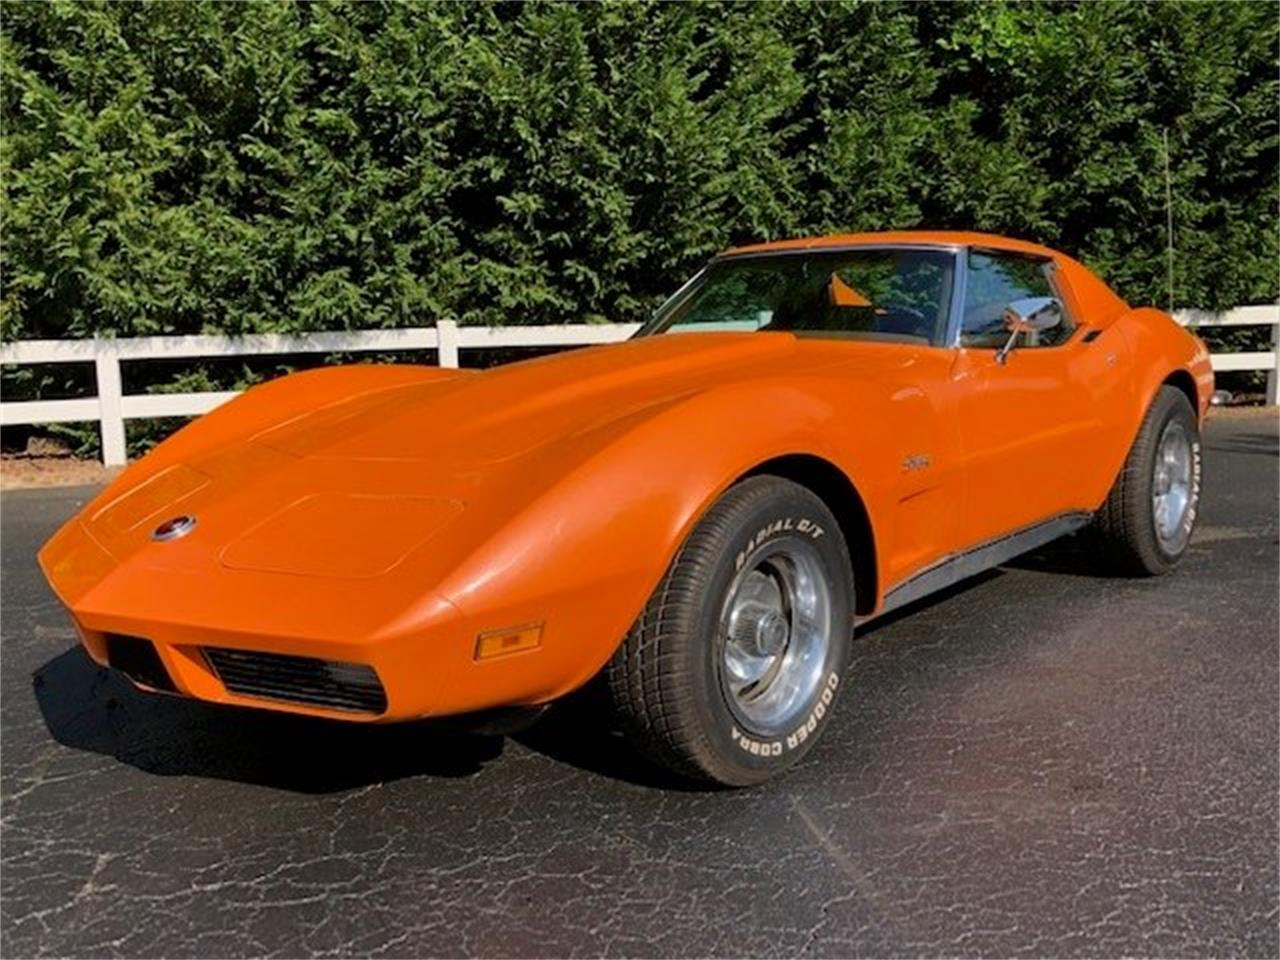 Large Picture of '73 Corvette located in Fletcher North Carolina Auction Vehicle Offered by Tom Mack Auctions - Q1EQ